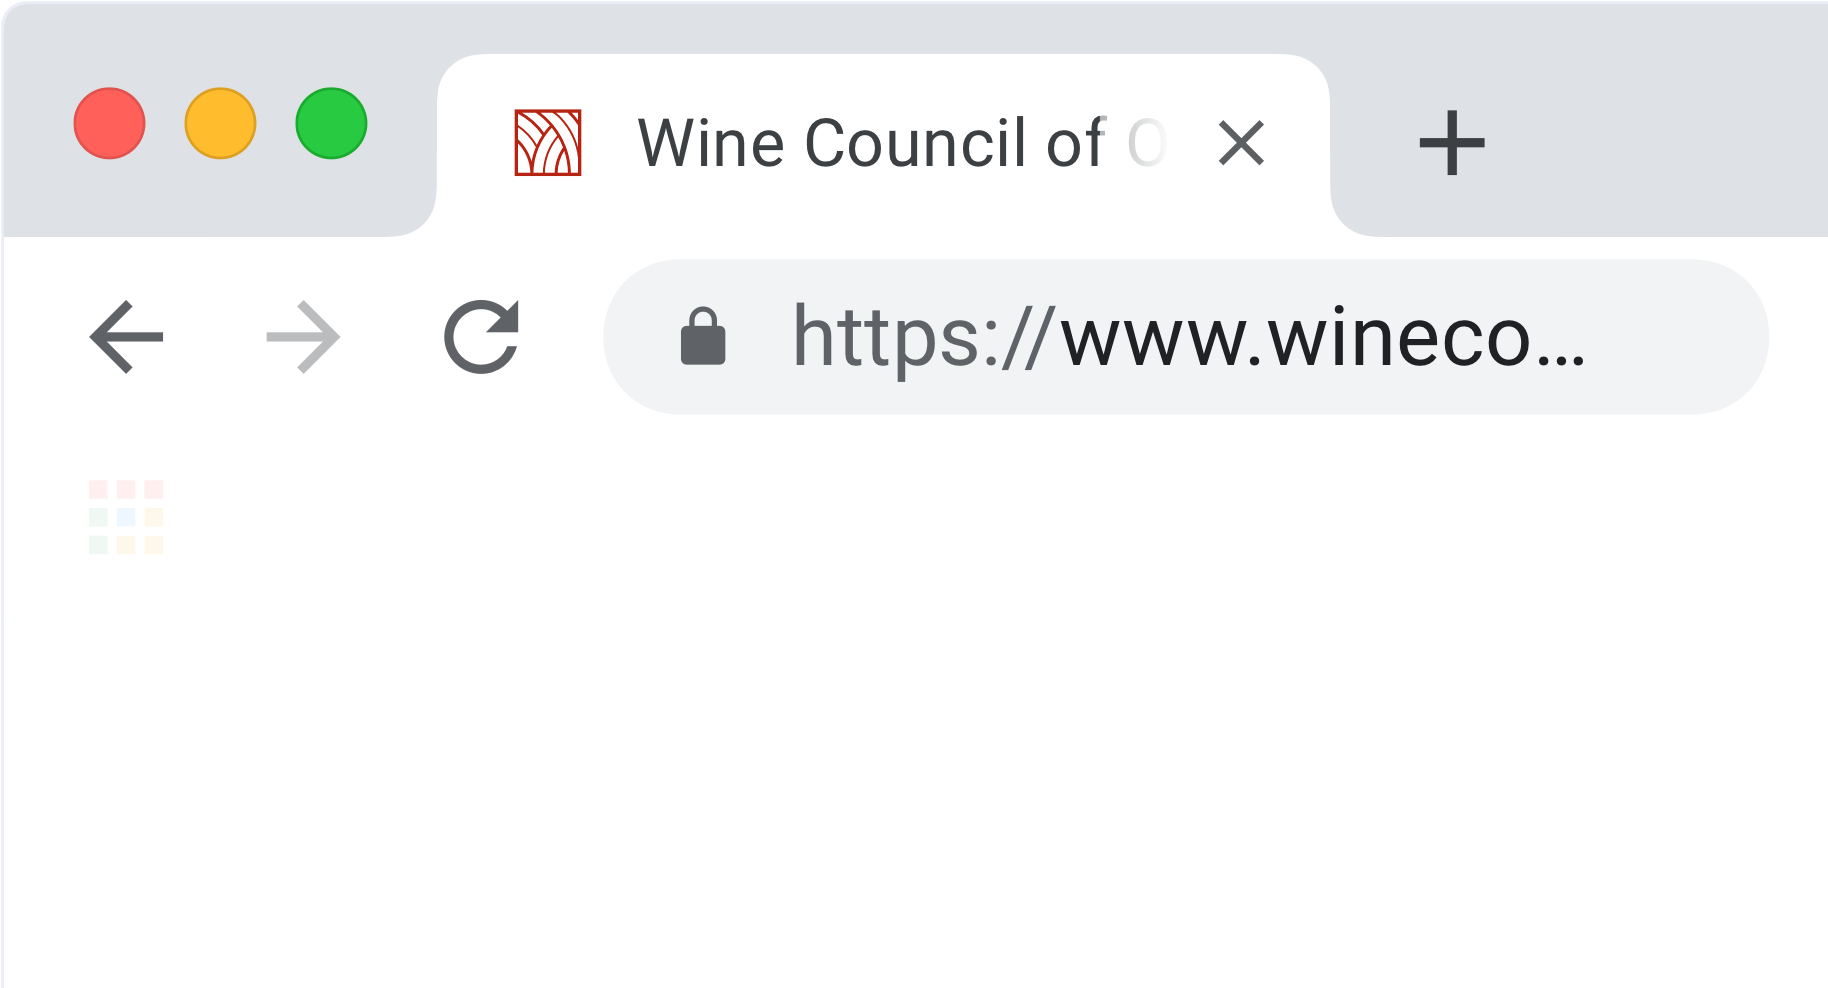 Wine Council of Ontario Favicon in Chrome Browser Tab